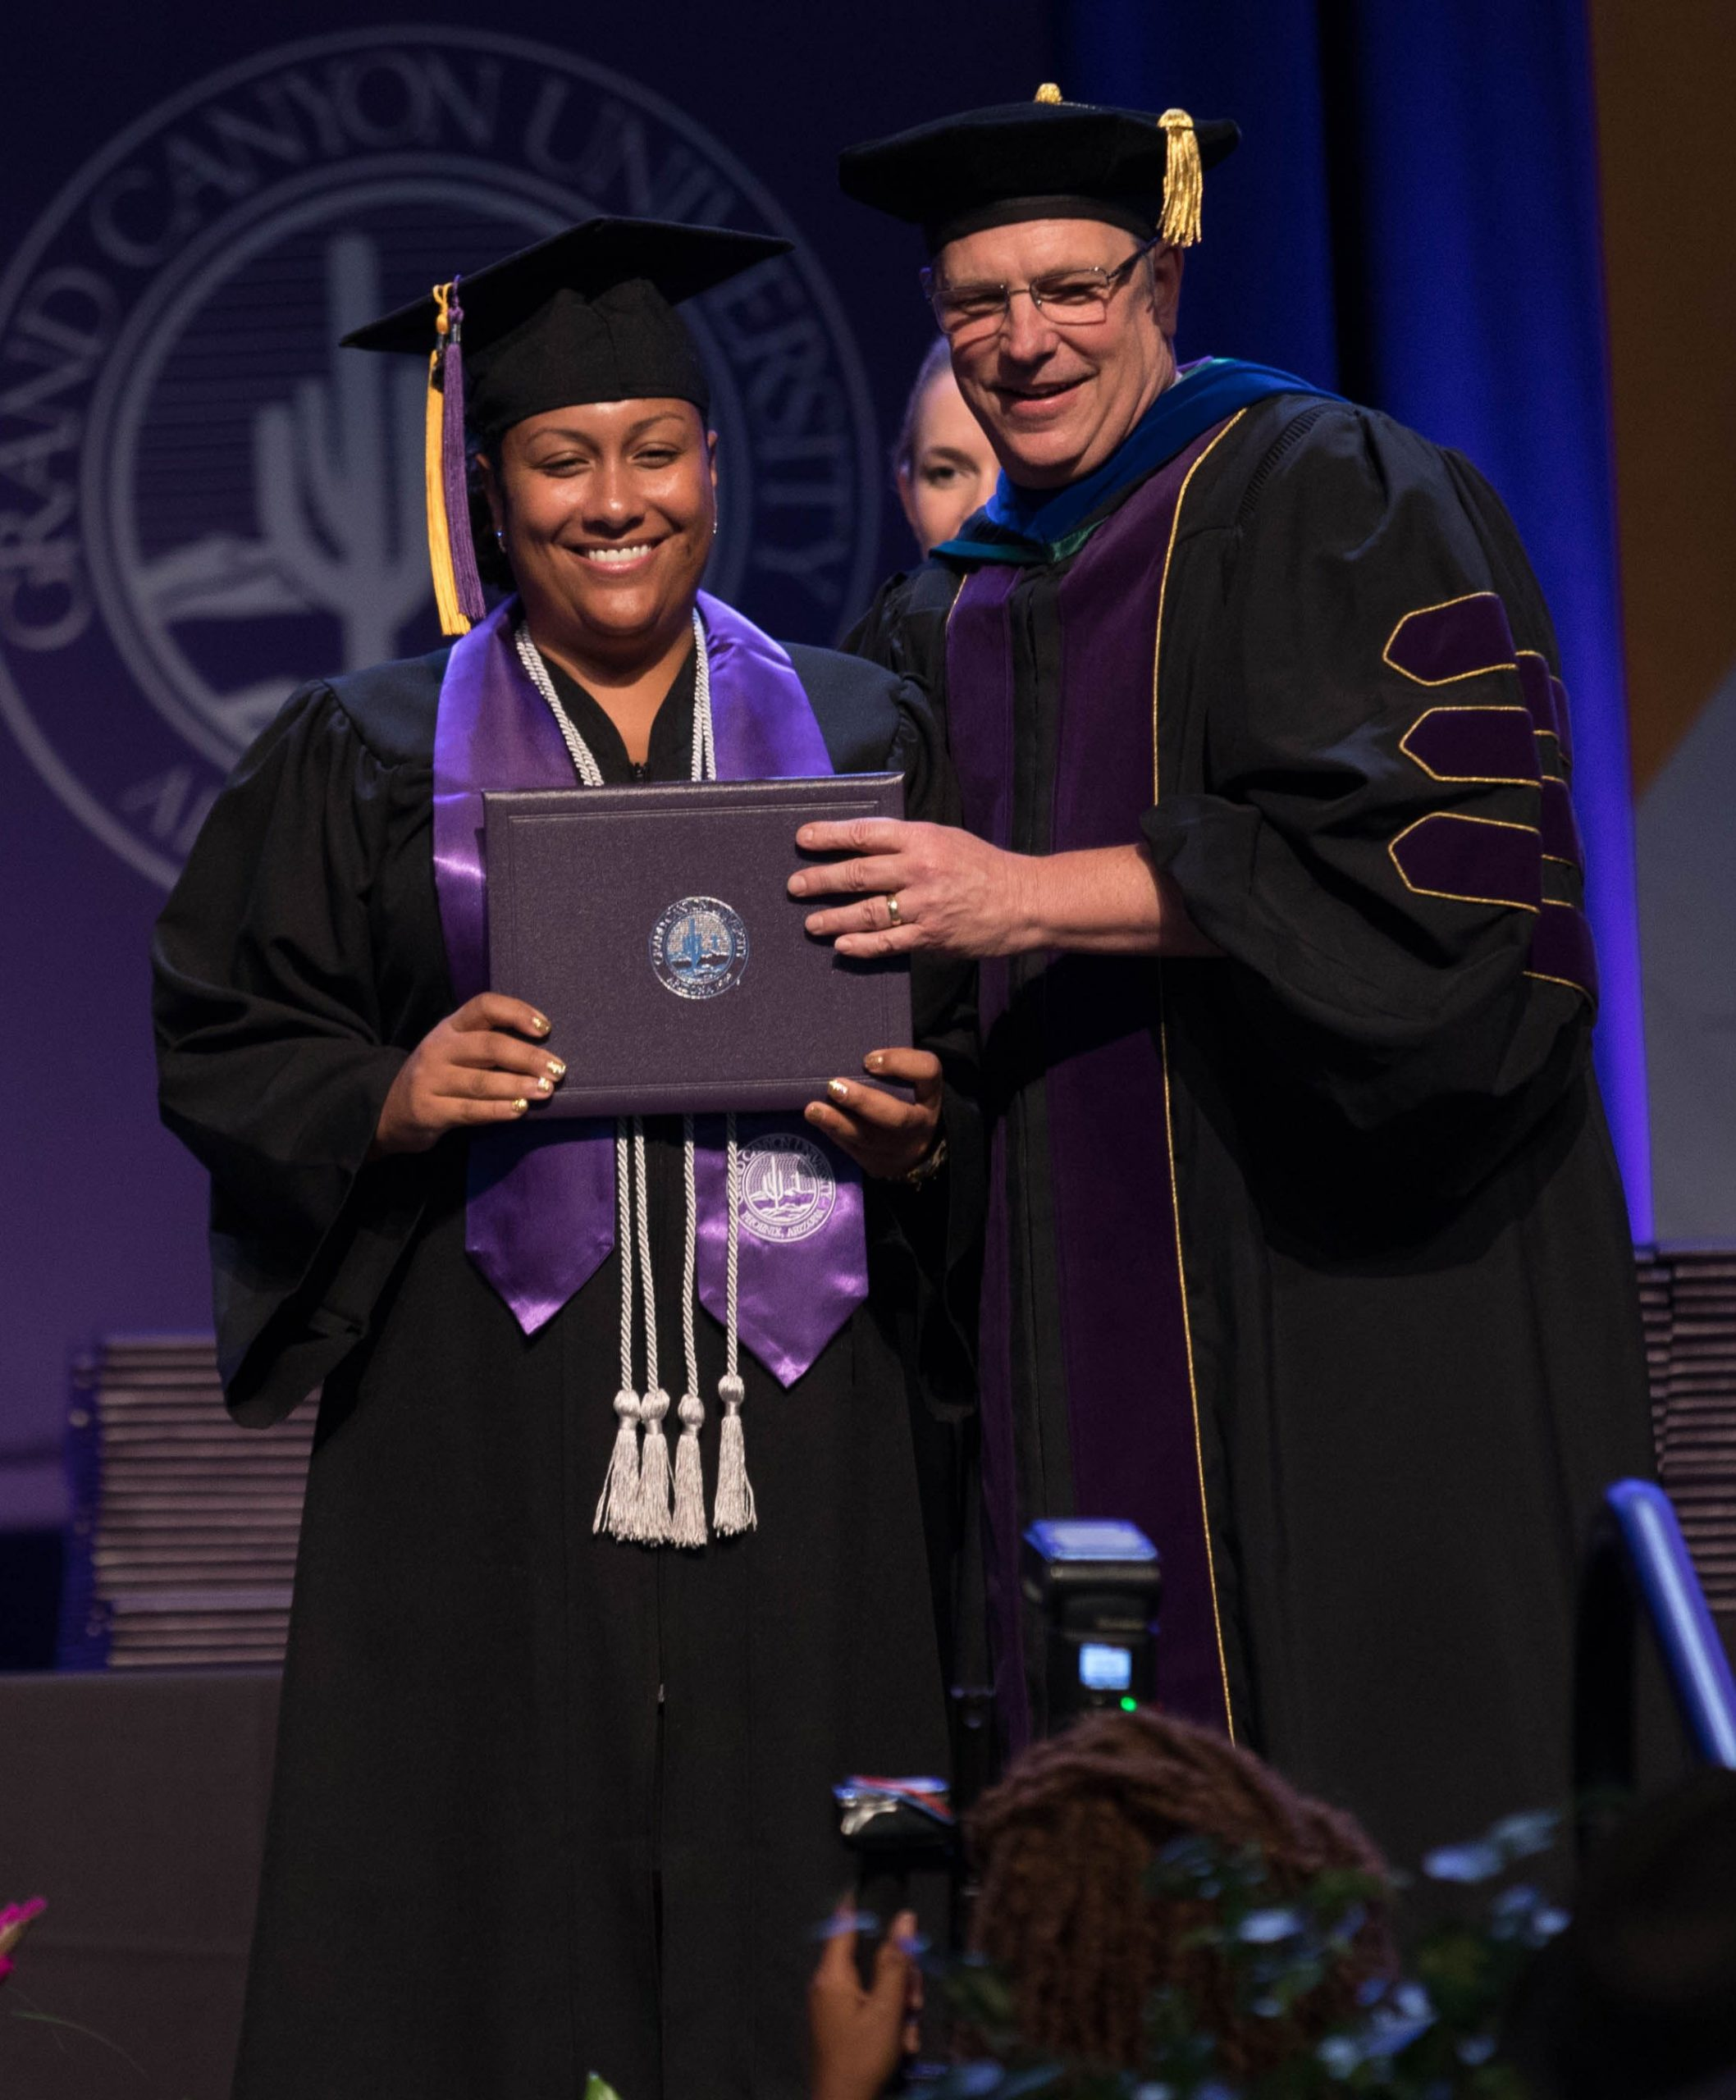 Slideshow: Friday Commencement Ceremonies - Gcu Today With Gcu Fall 2021 Graduation